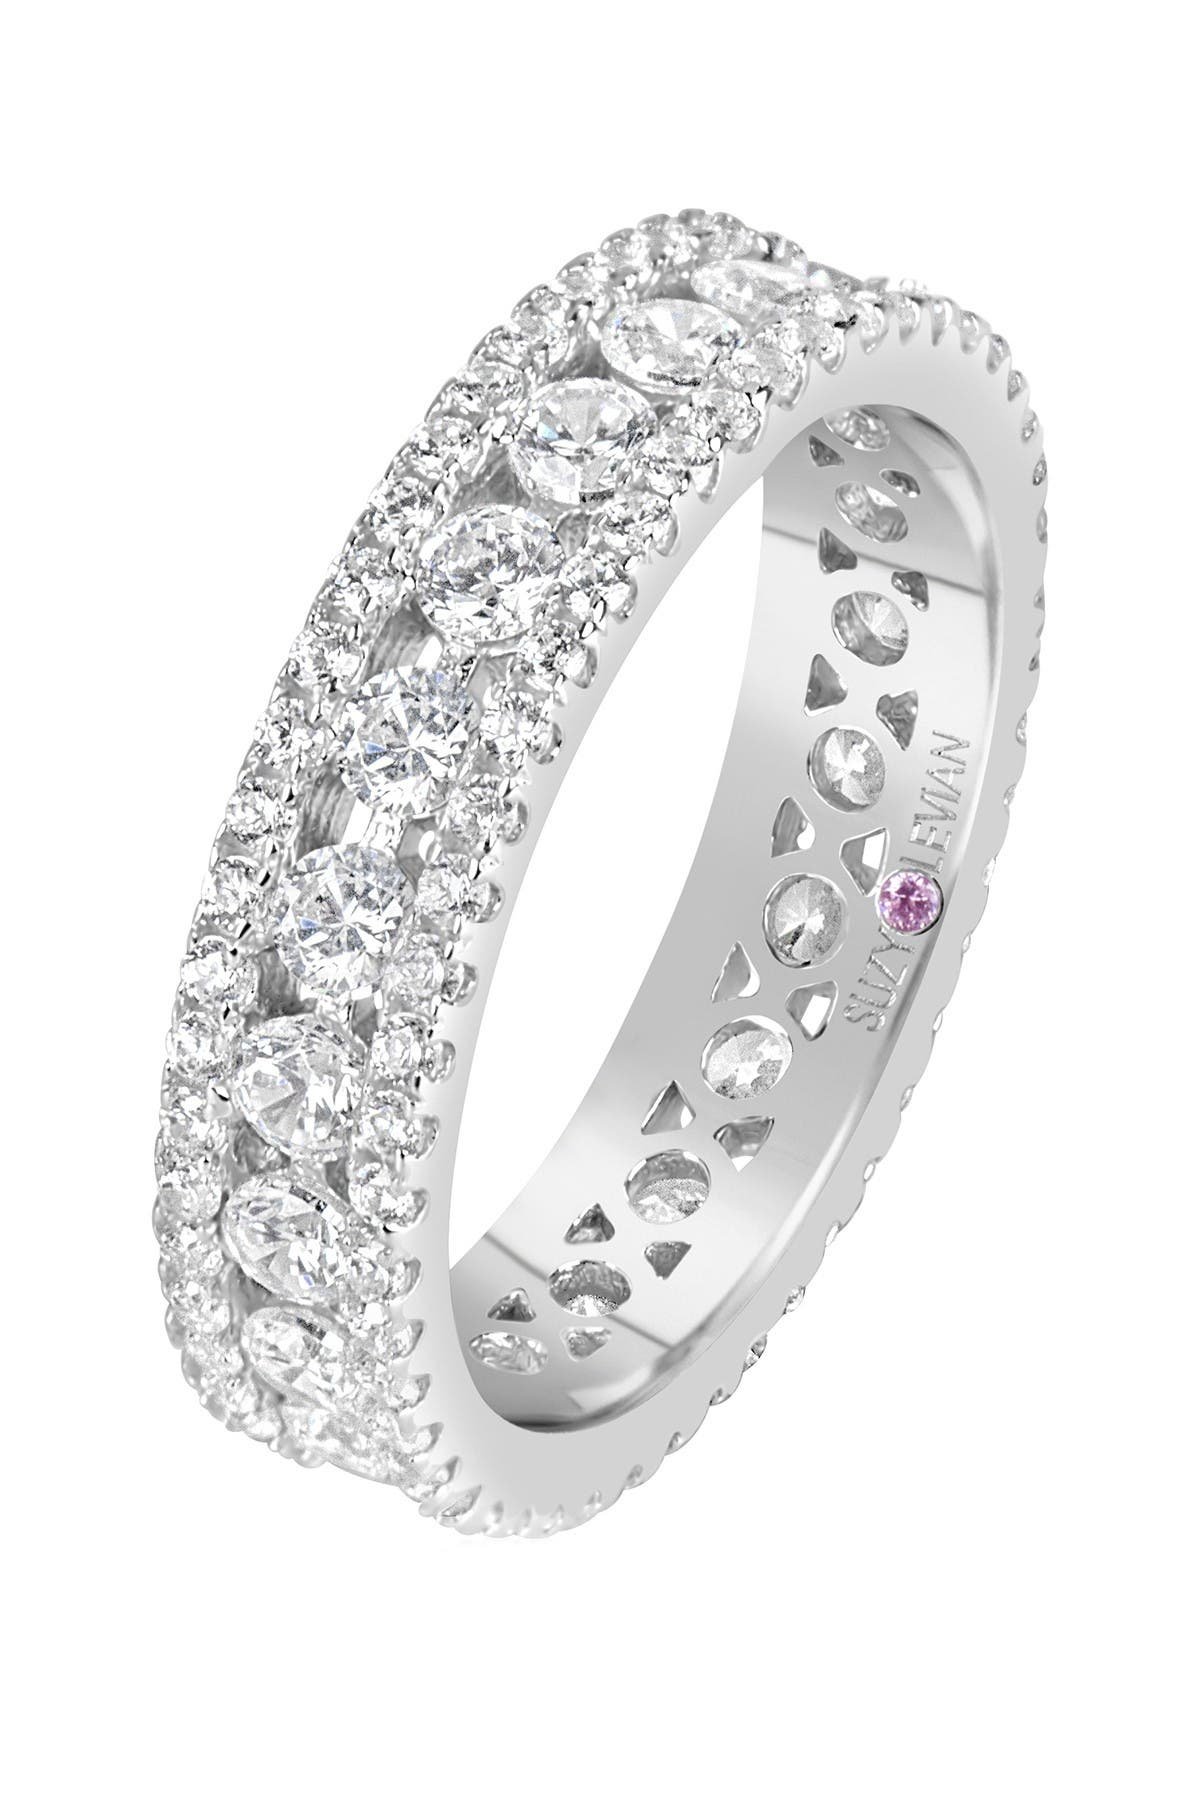 Image of Suzy Levian Sterling Silver CZ White Three Row Modern Eternity Band Ring